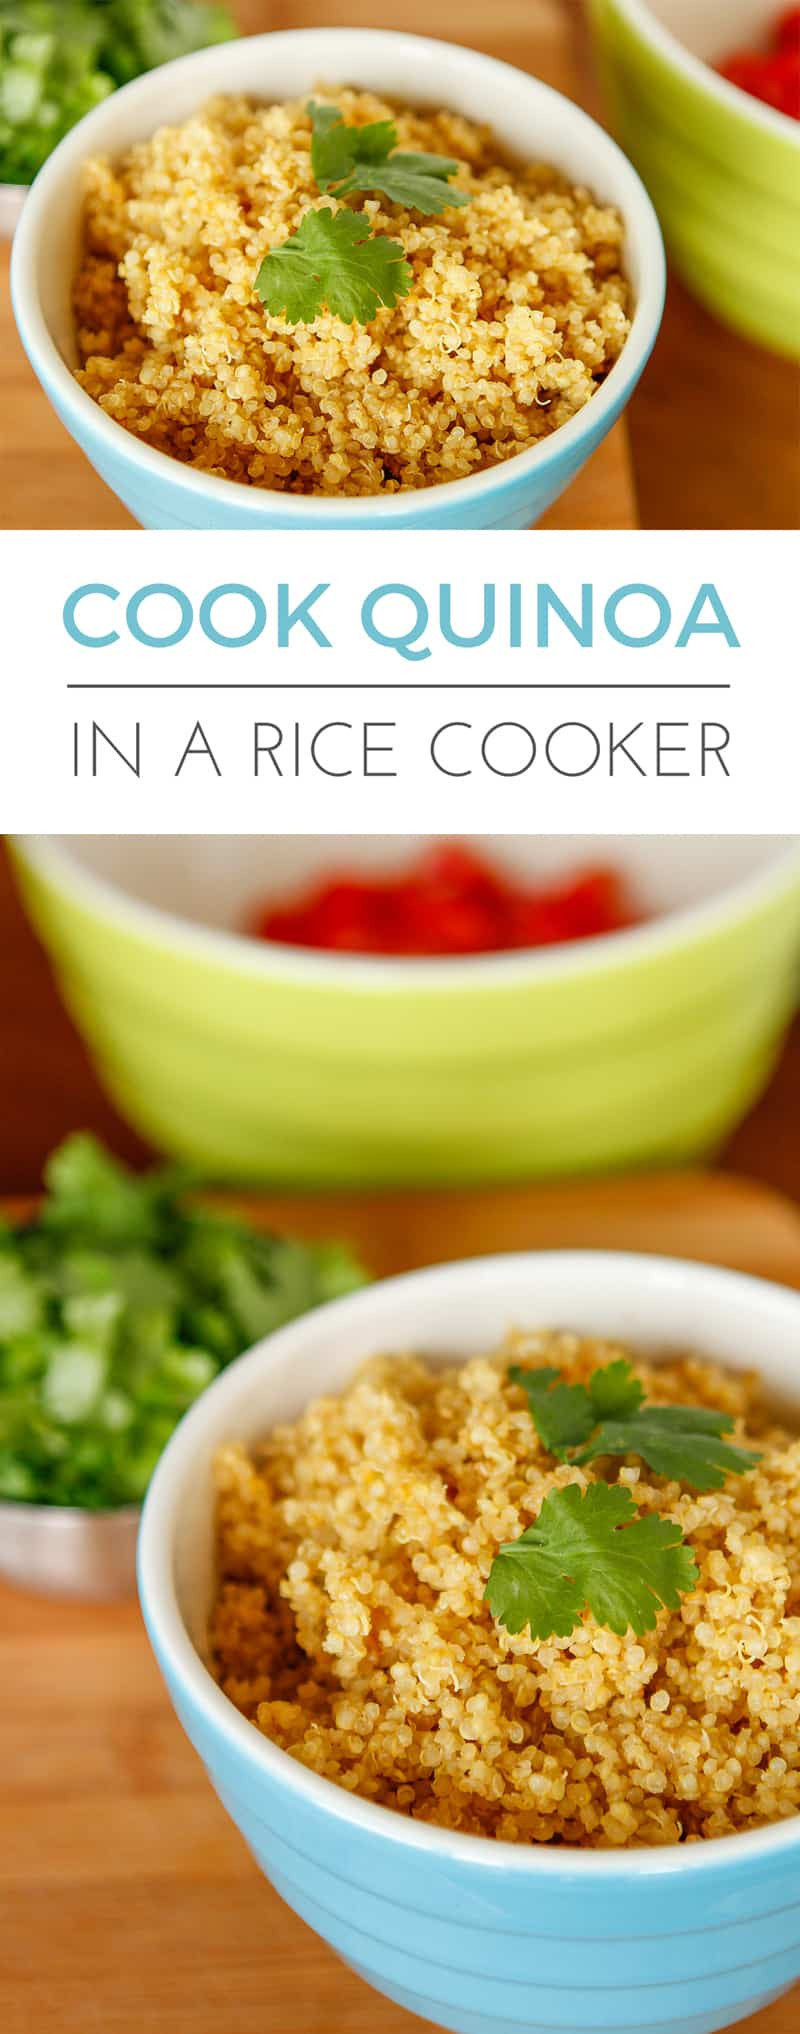 Rice Cooker Quinoa  How to Make Quinoa in a Rice Cooker – Unsophisticook